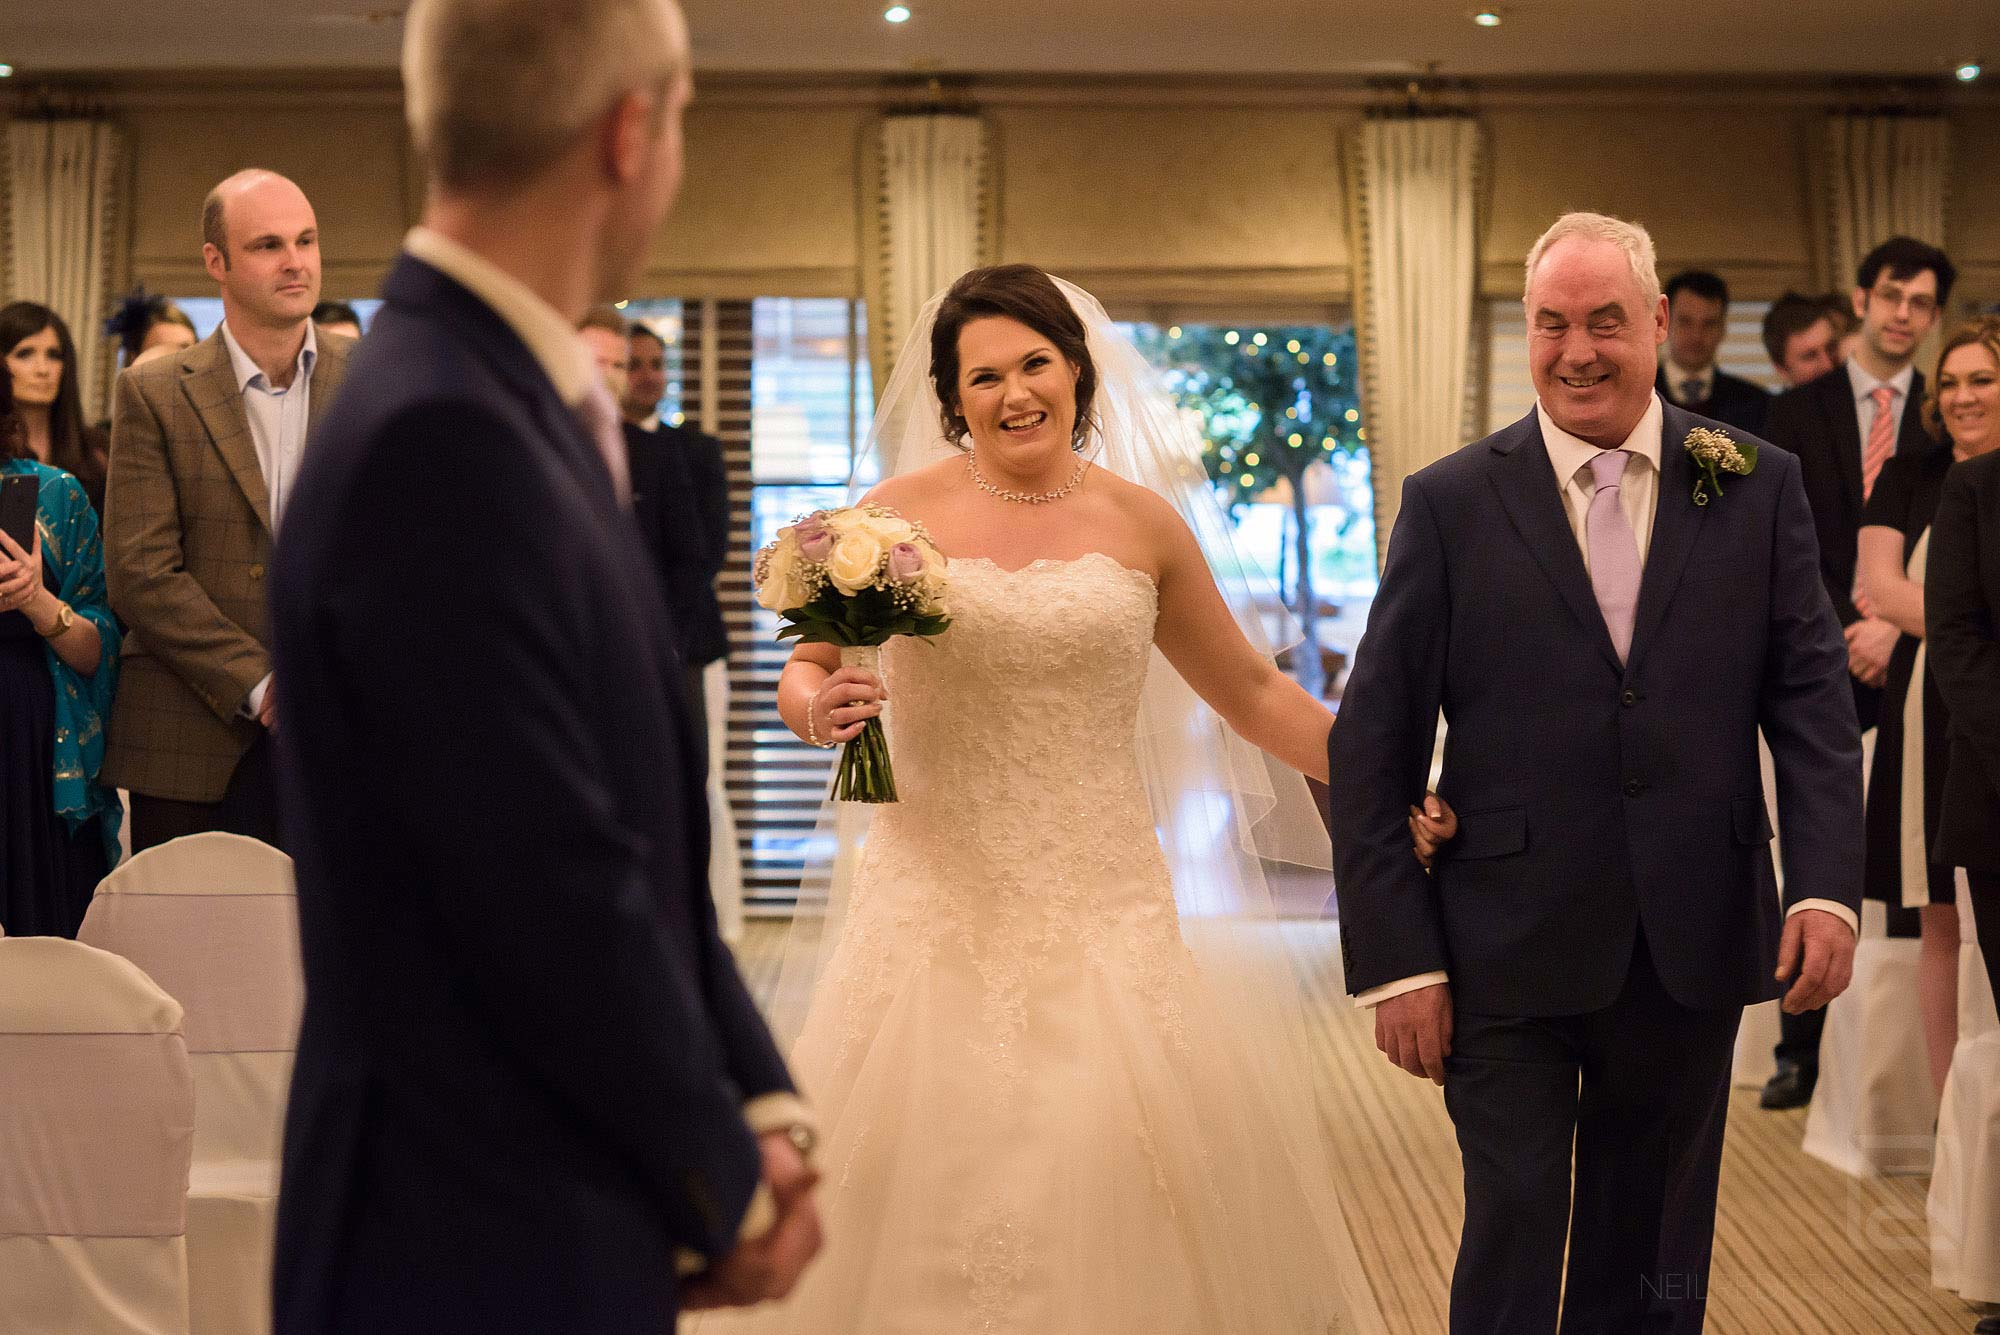 bride looking at groom as she walks down the aisle at Rowton Hall wedding